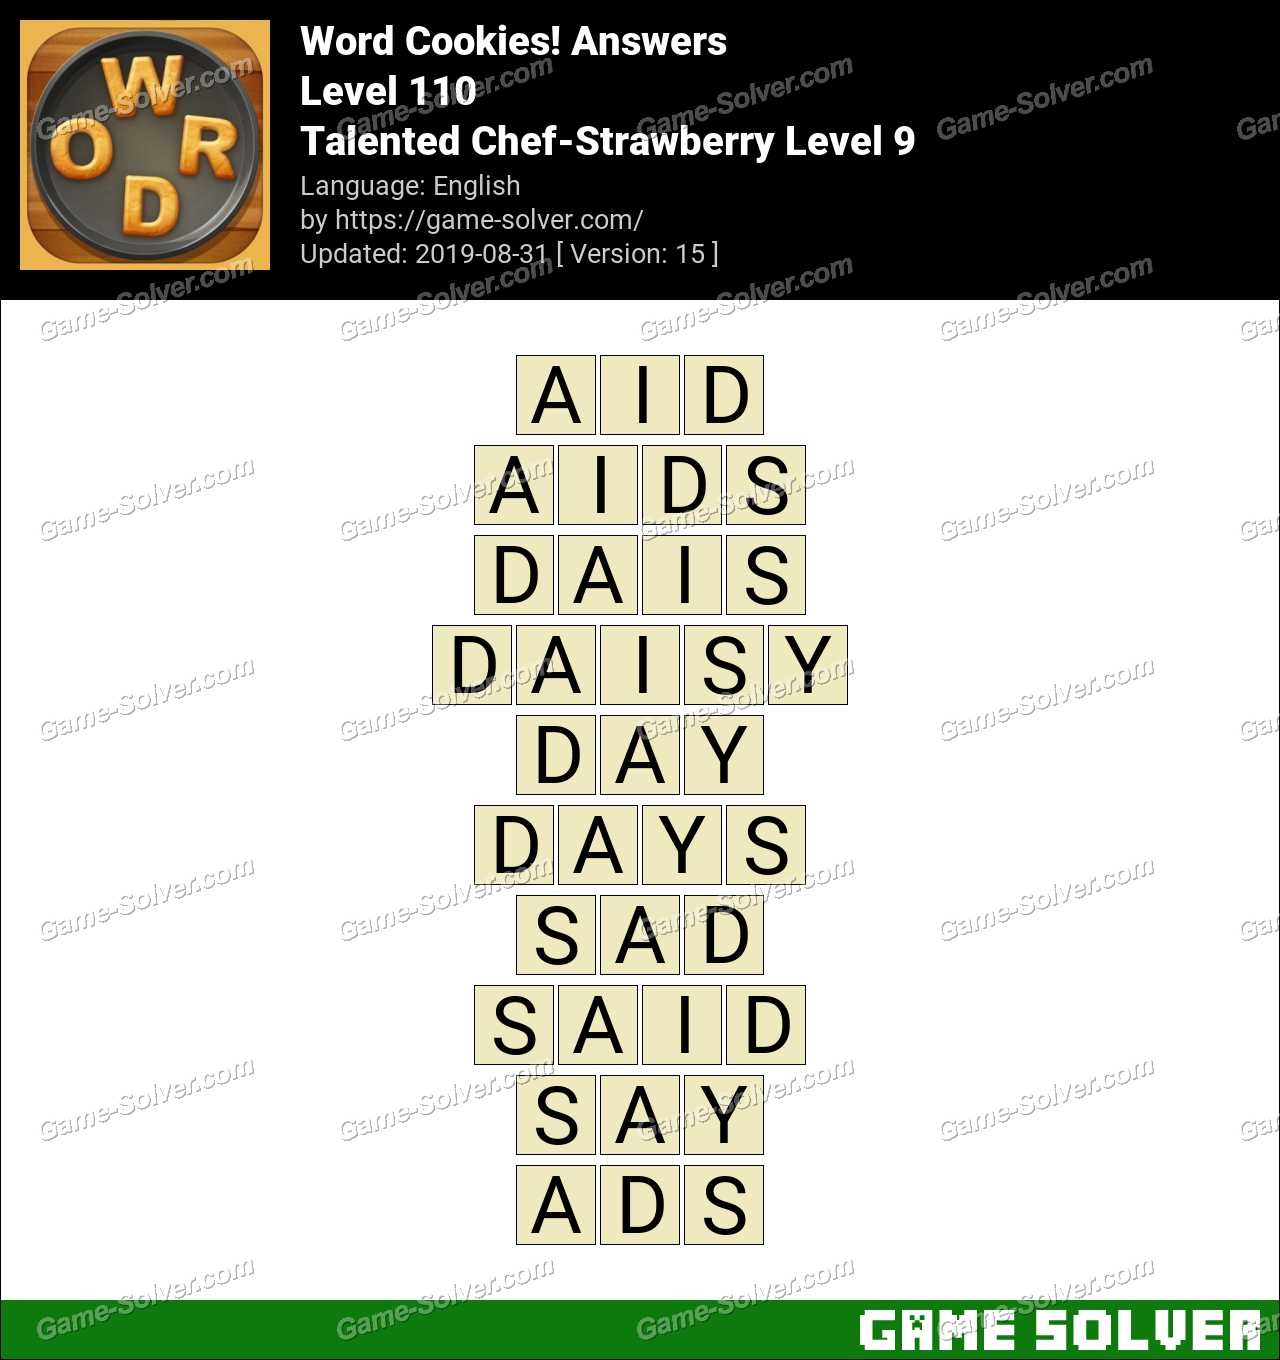 Word Cookies Talented Chef-Strawberry Level 9 Answers